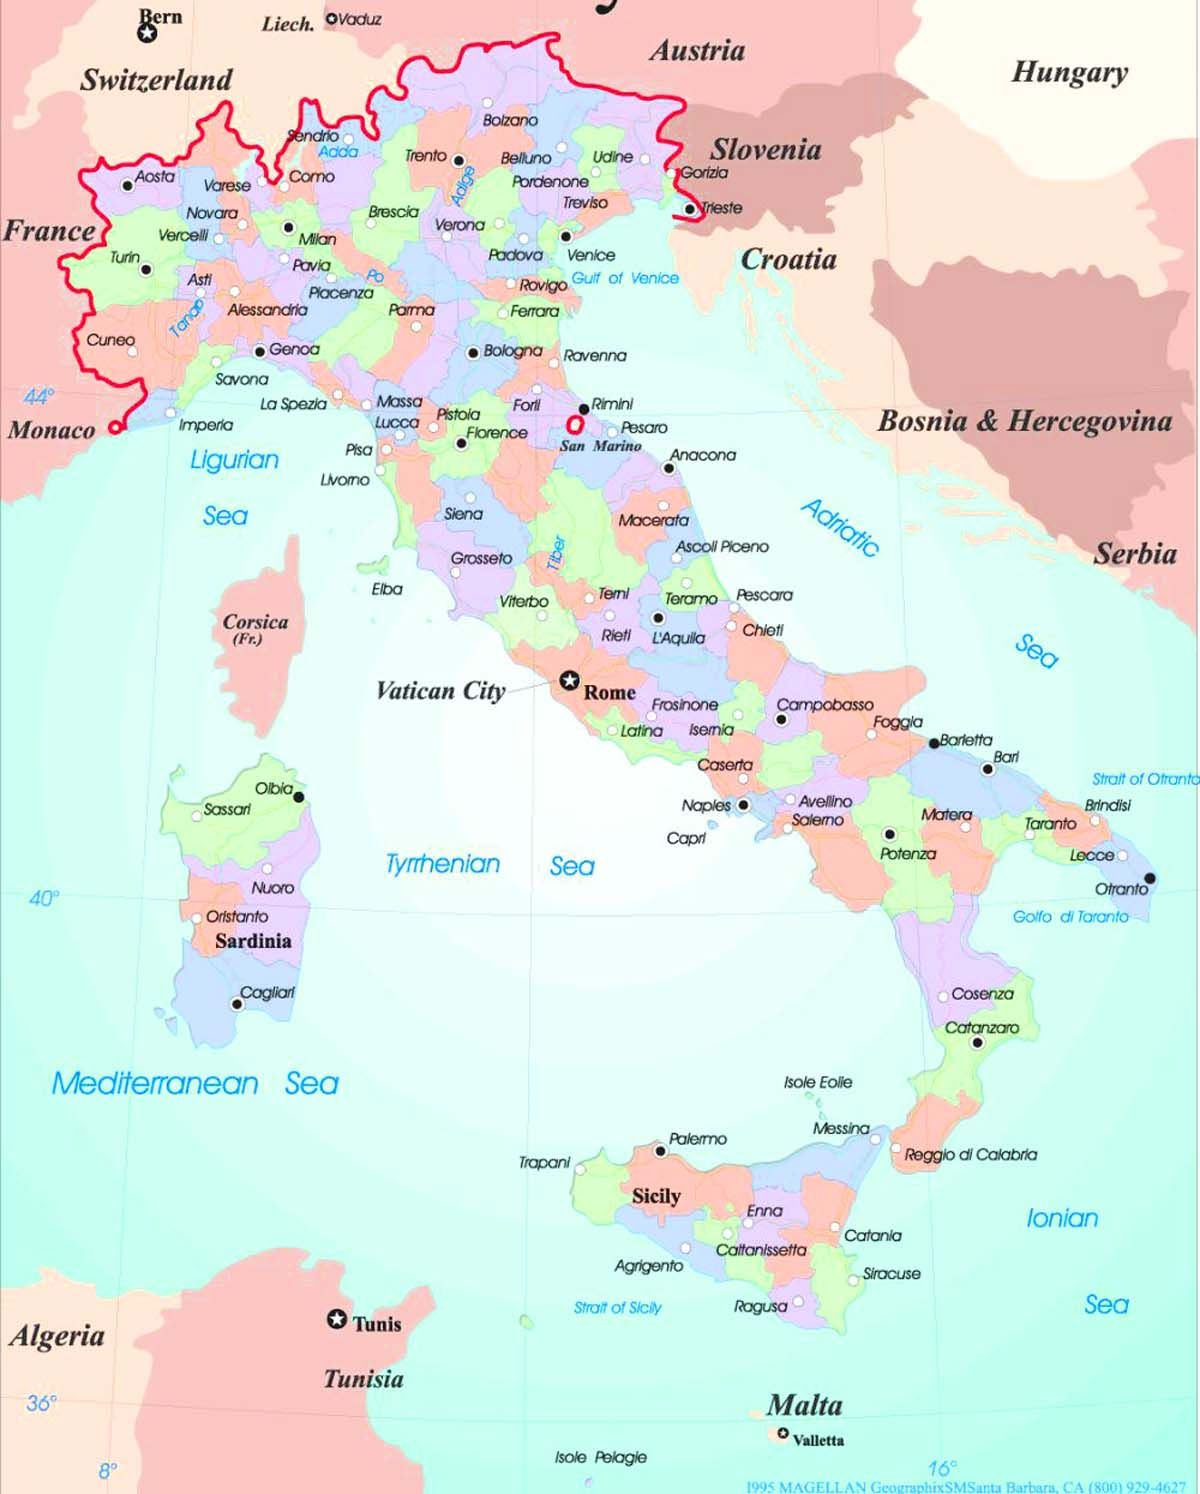 North Of Italy Map.Map Of Italy Showing Cities 01 Map Of Northern Italy Italy Map